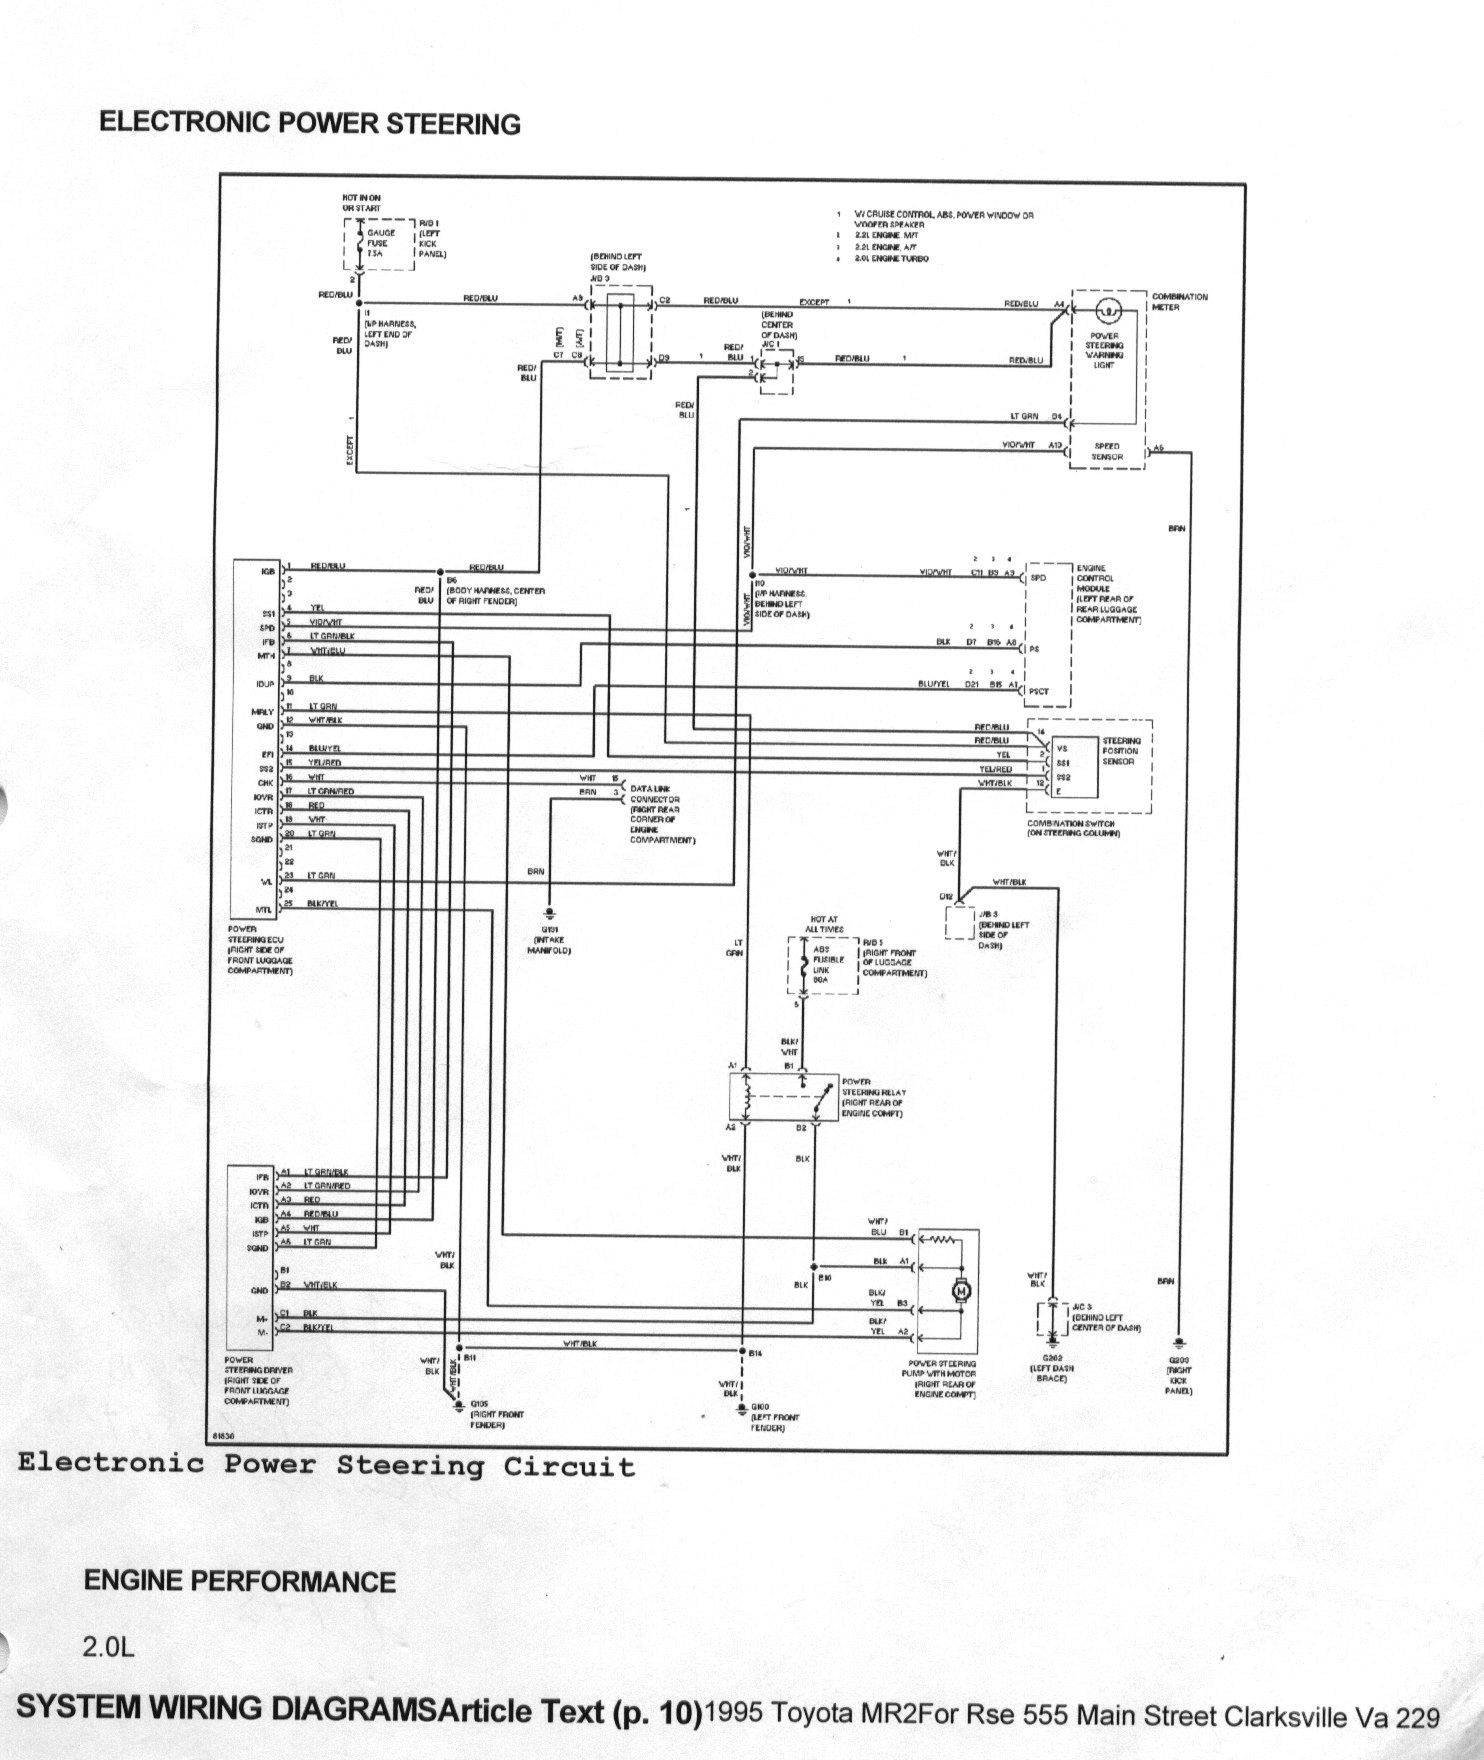 Truck Steering System Diagram Ford Ranger Gt Meter Counter Delay Circuits Circuit With Semi